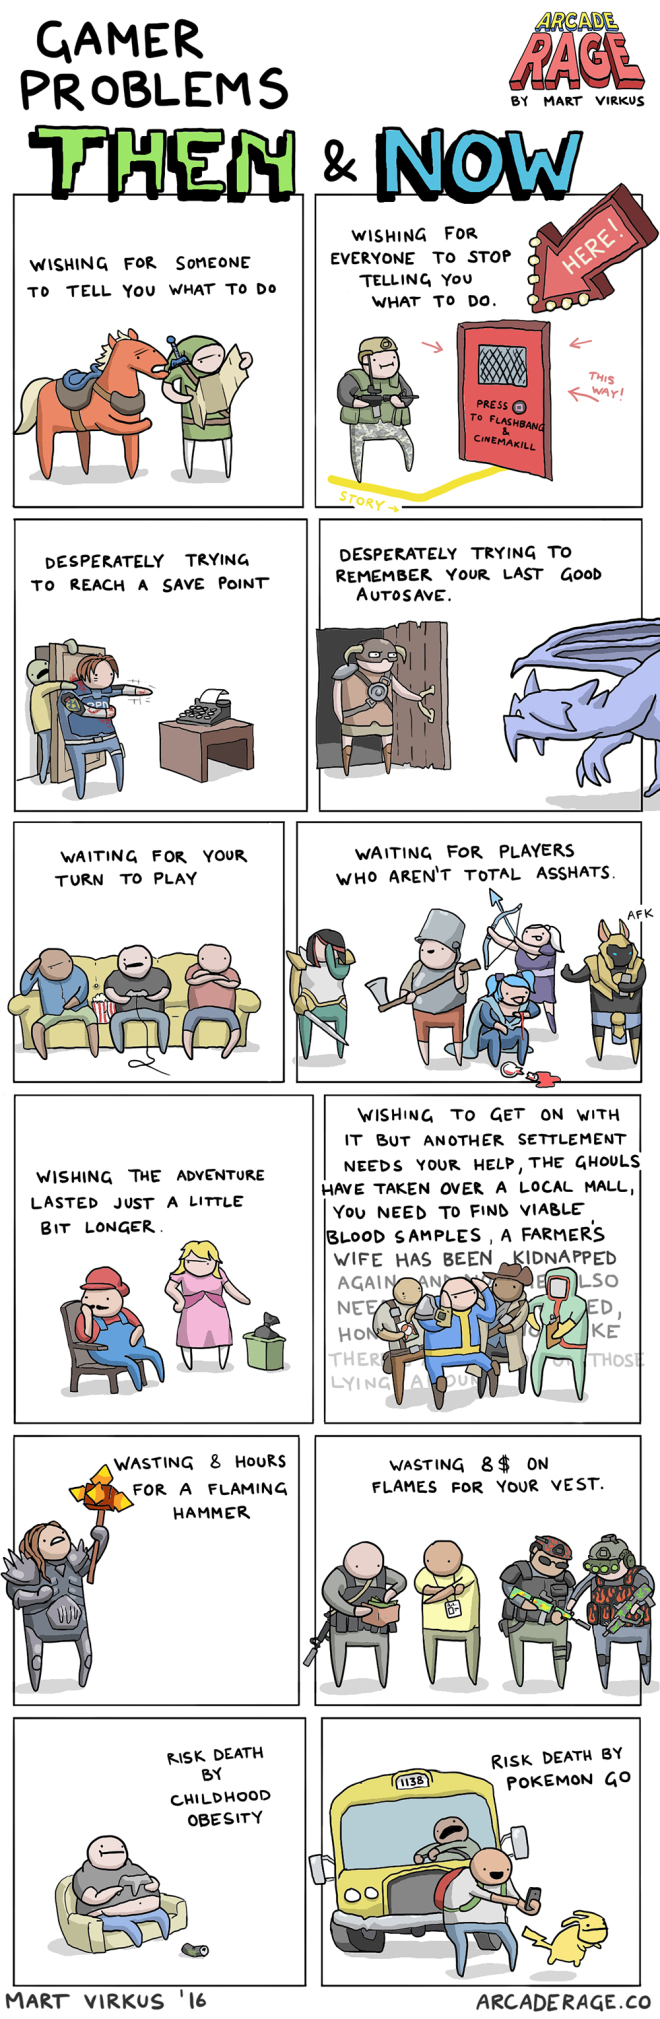 These Comics Perfectly Illustrate Video Game Problems From Your